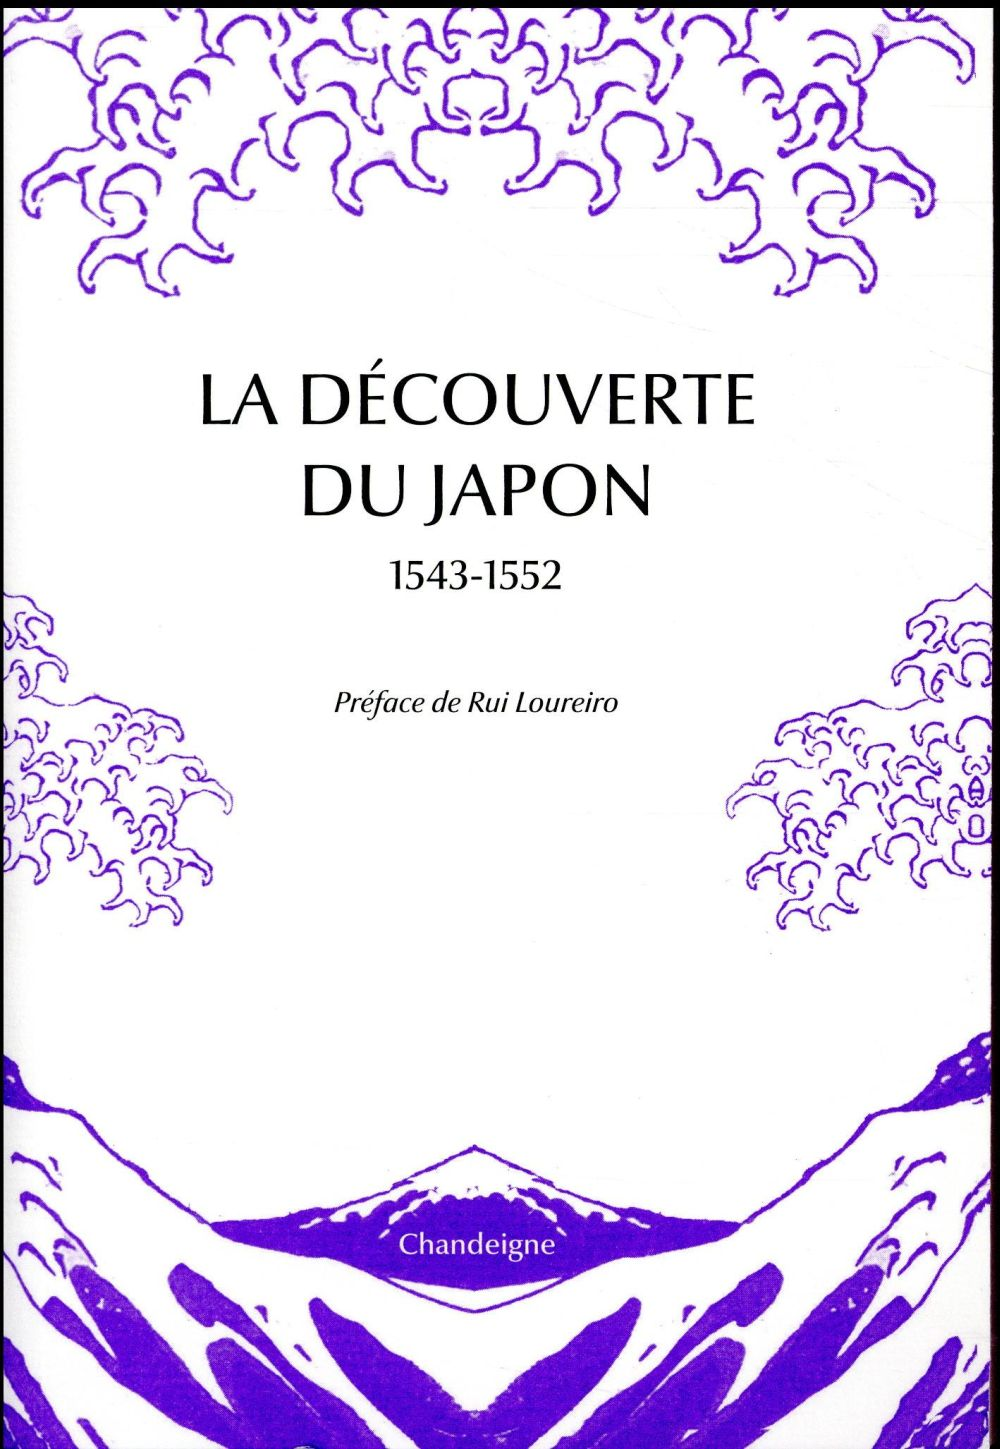 LA DECOUVERTE DU JAPON 1543-1552